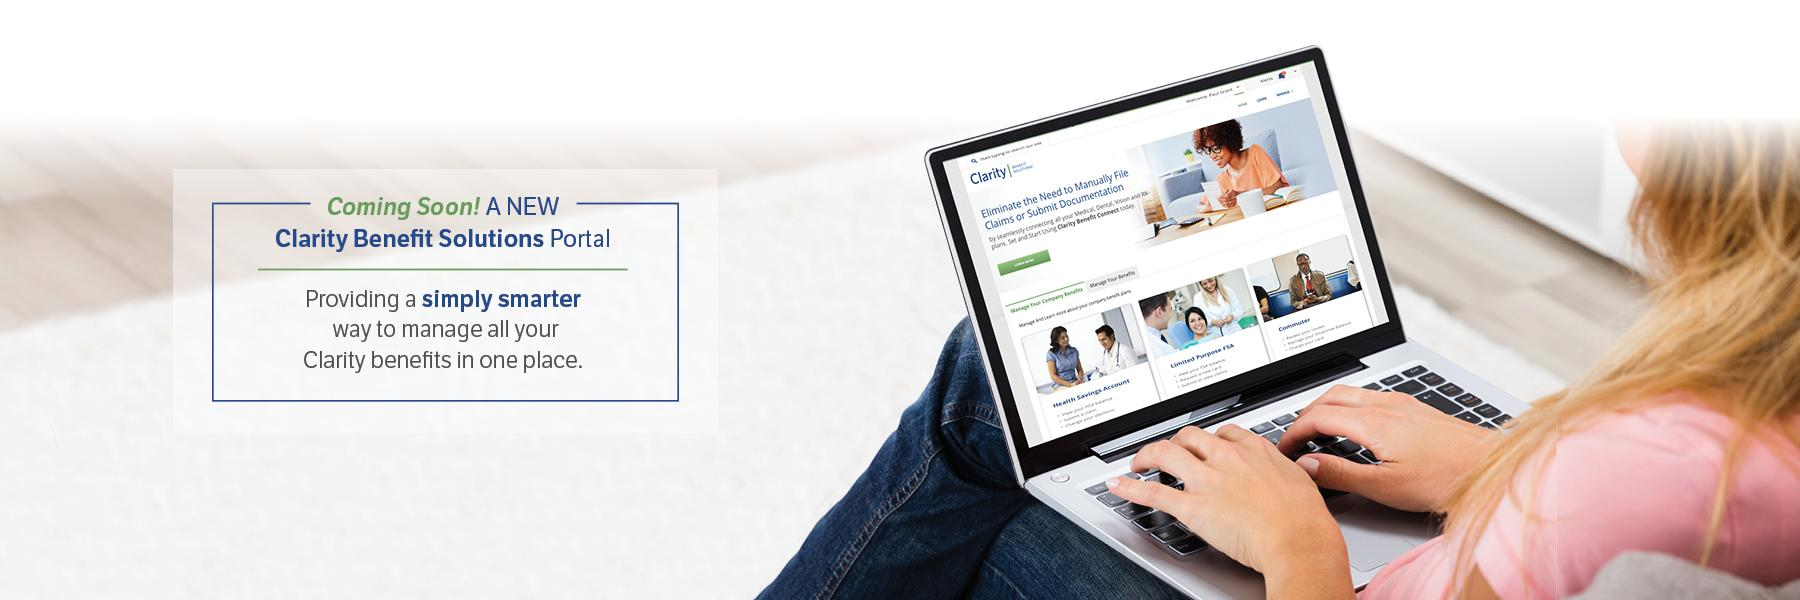 Coming Soon, A New Clarity Benefit Portal